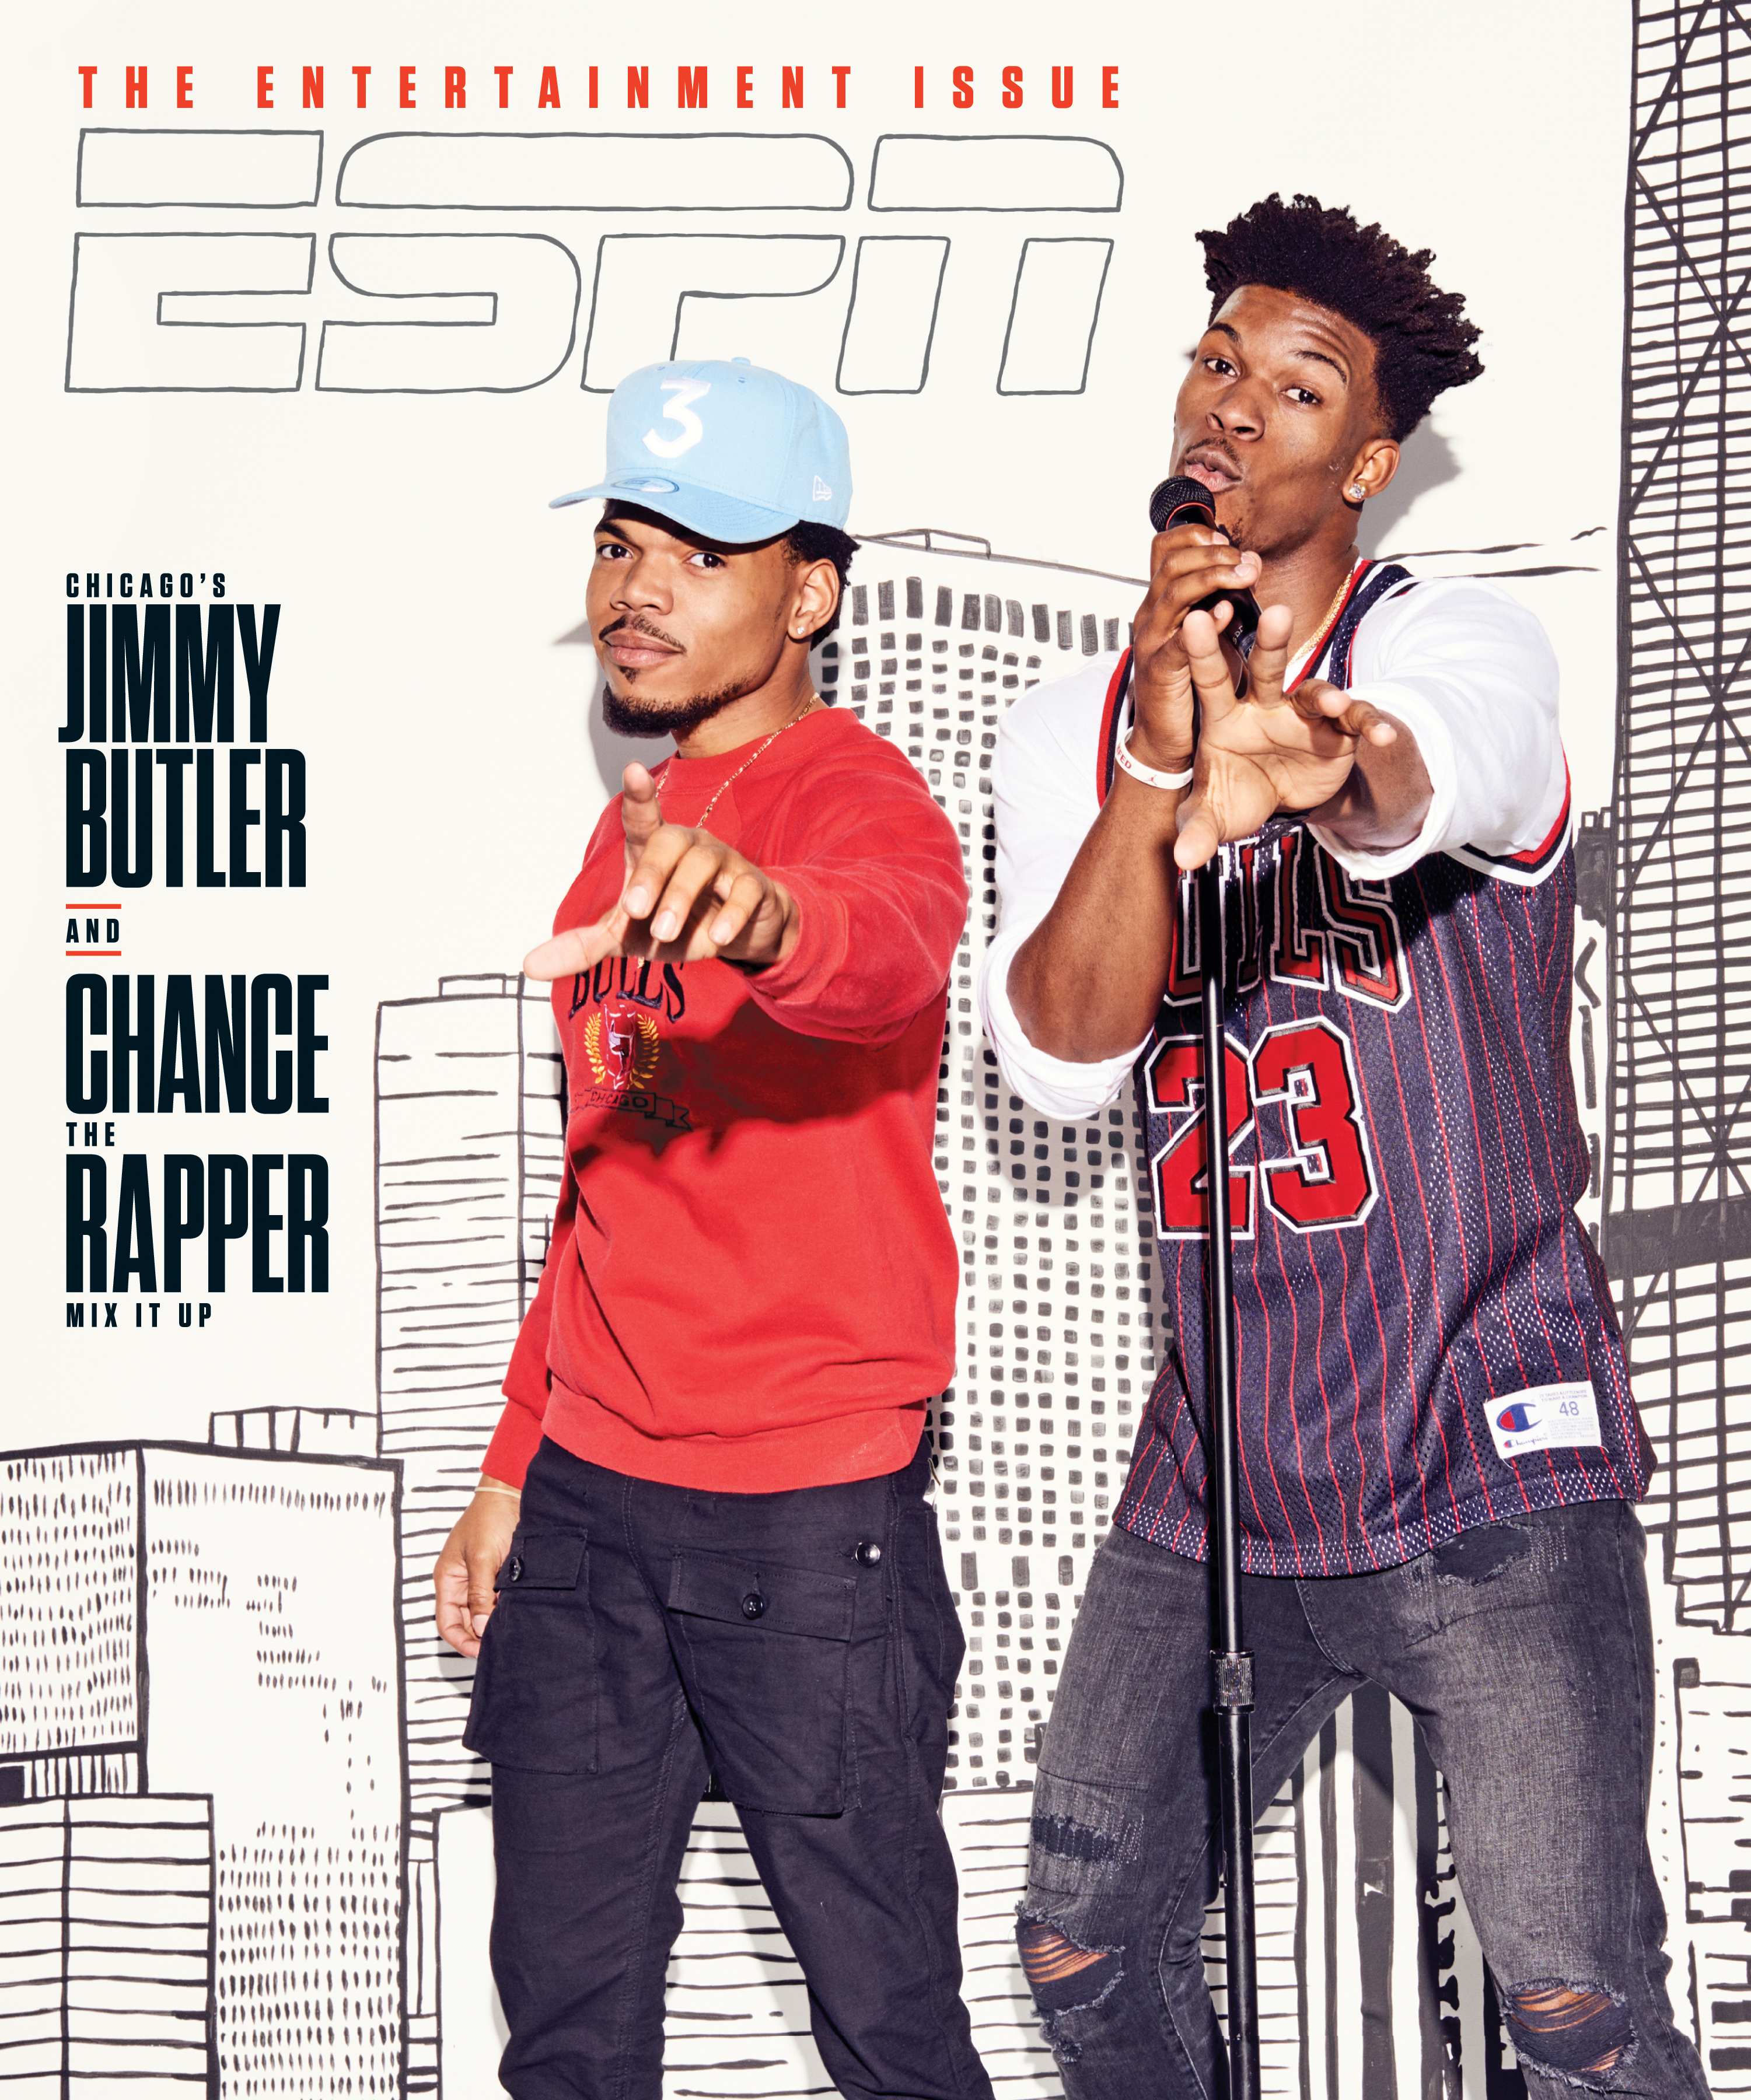 Jimmy Butler Chance the Rapper cover